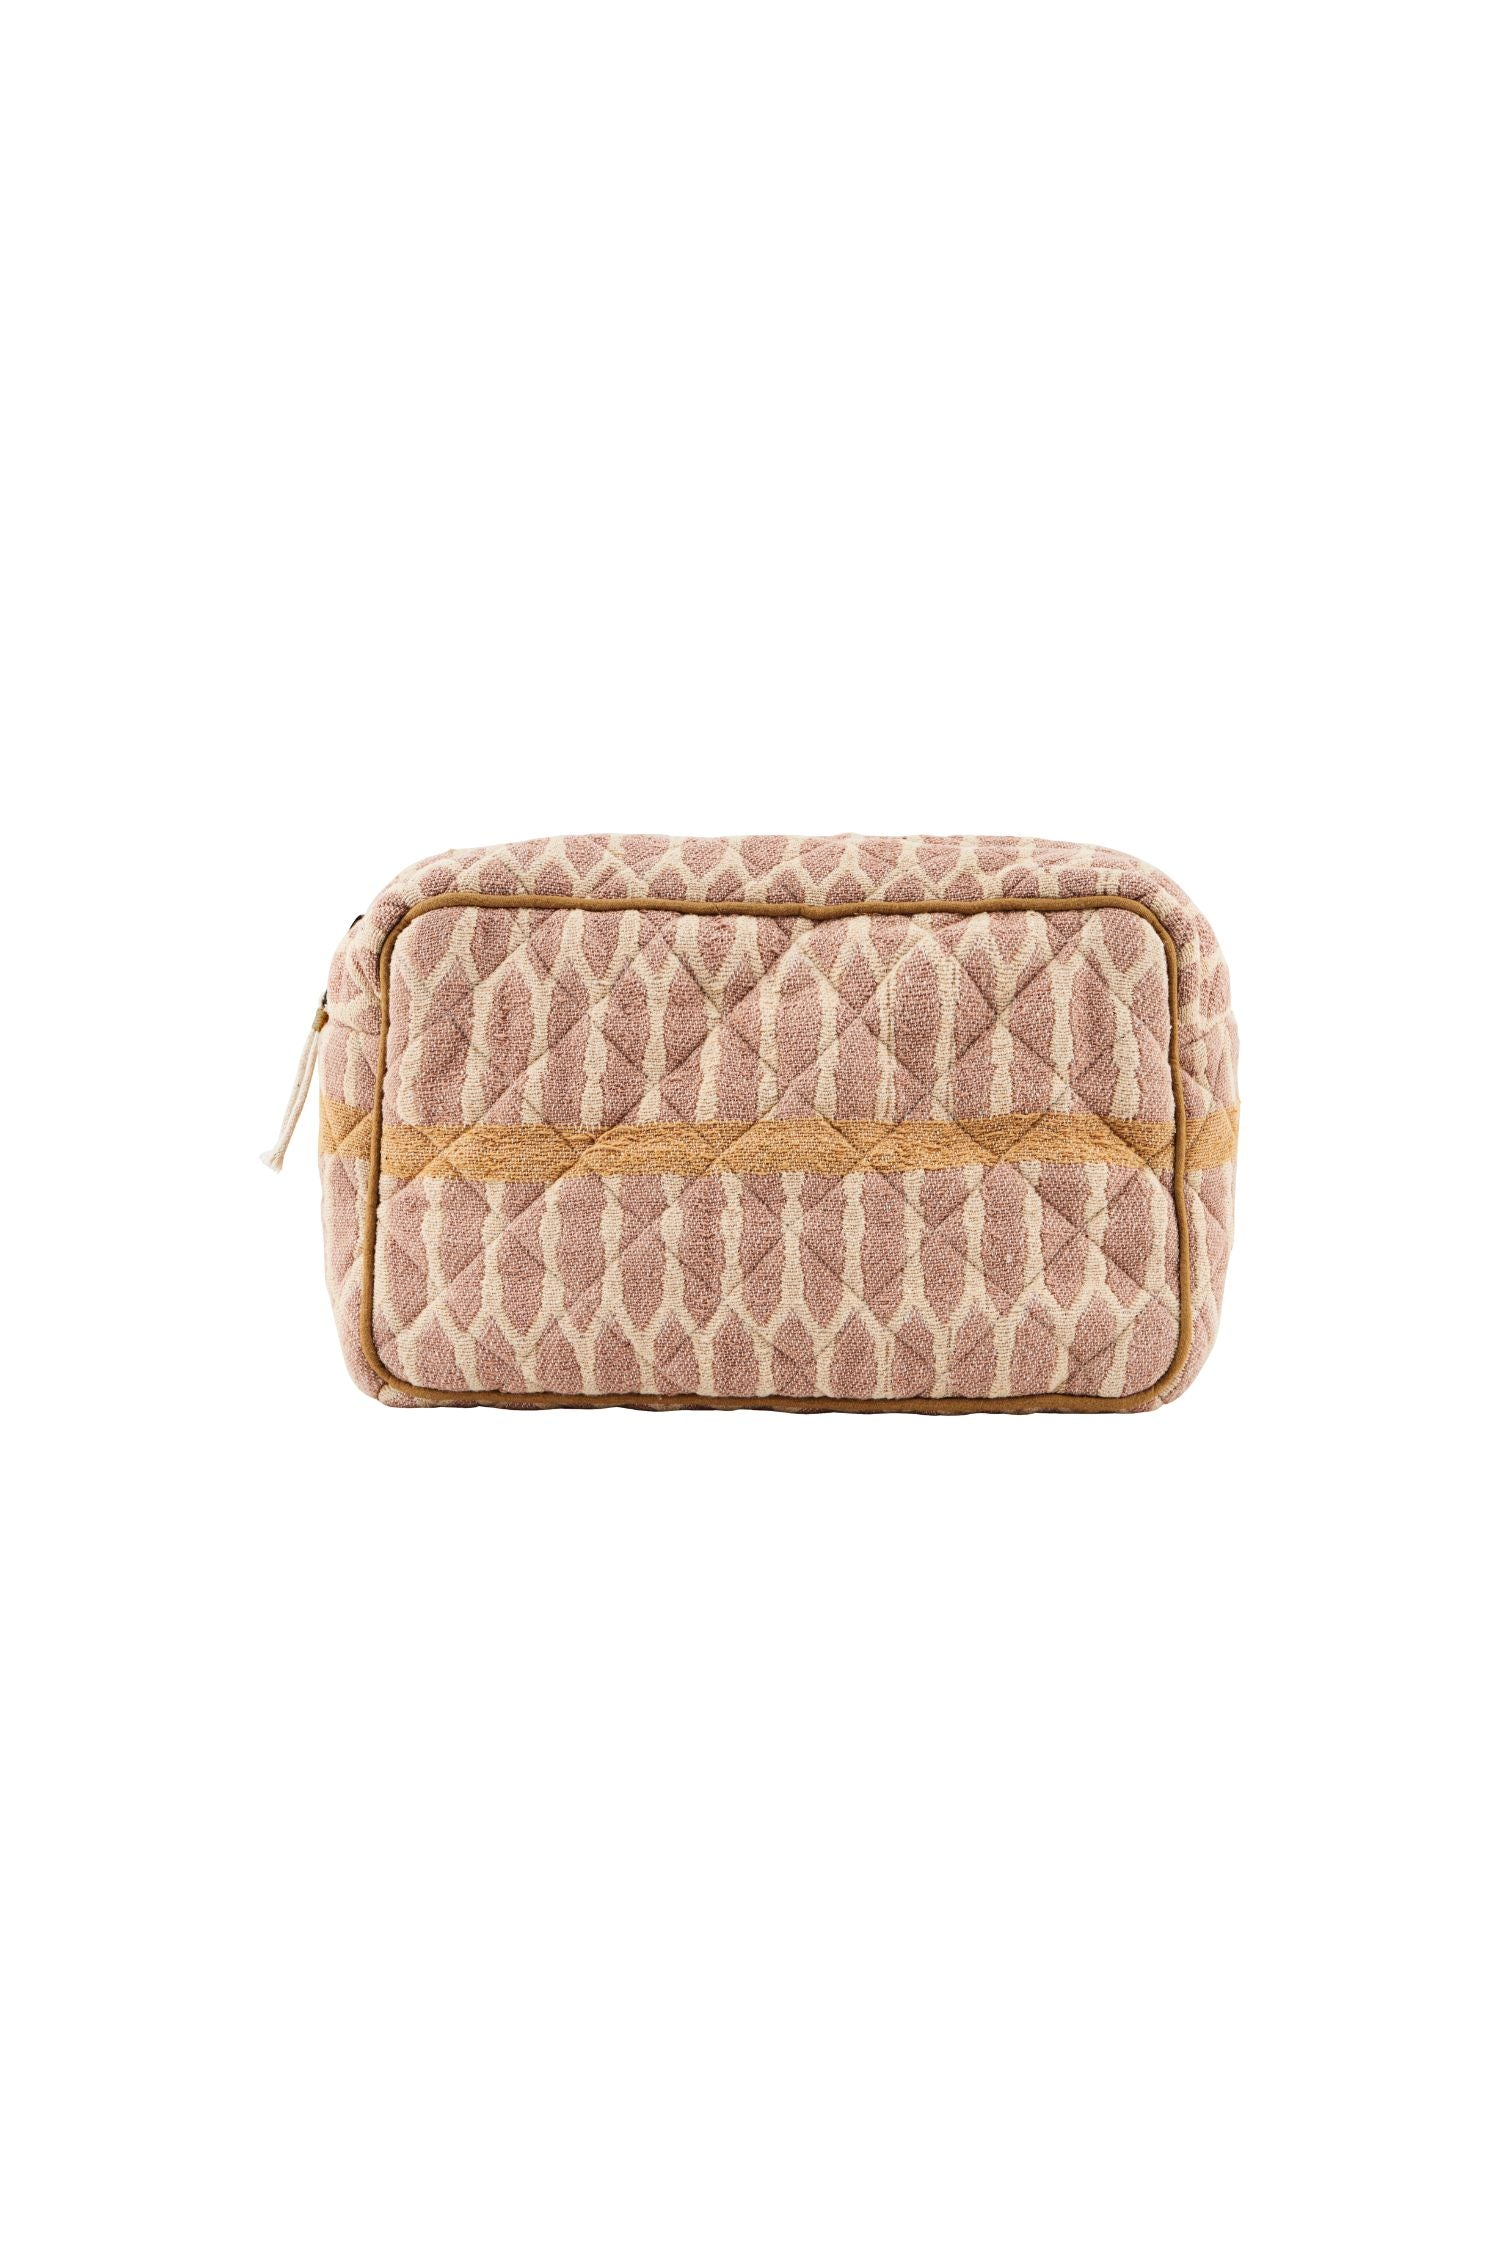 makeup bag mustard/terracotta